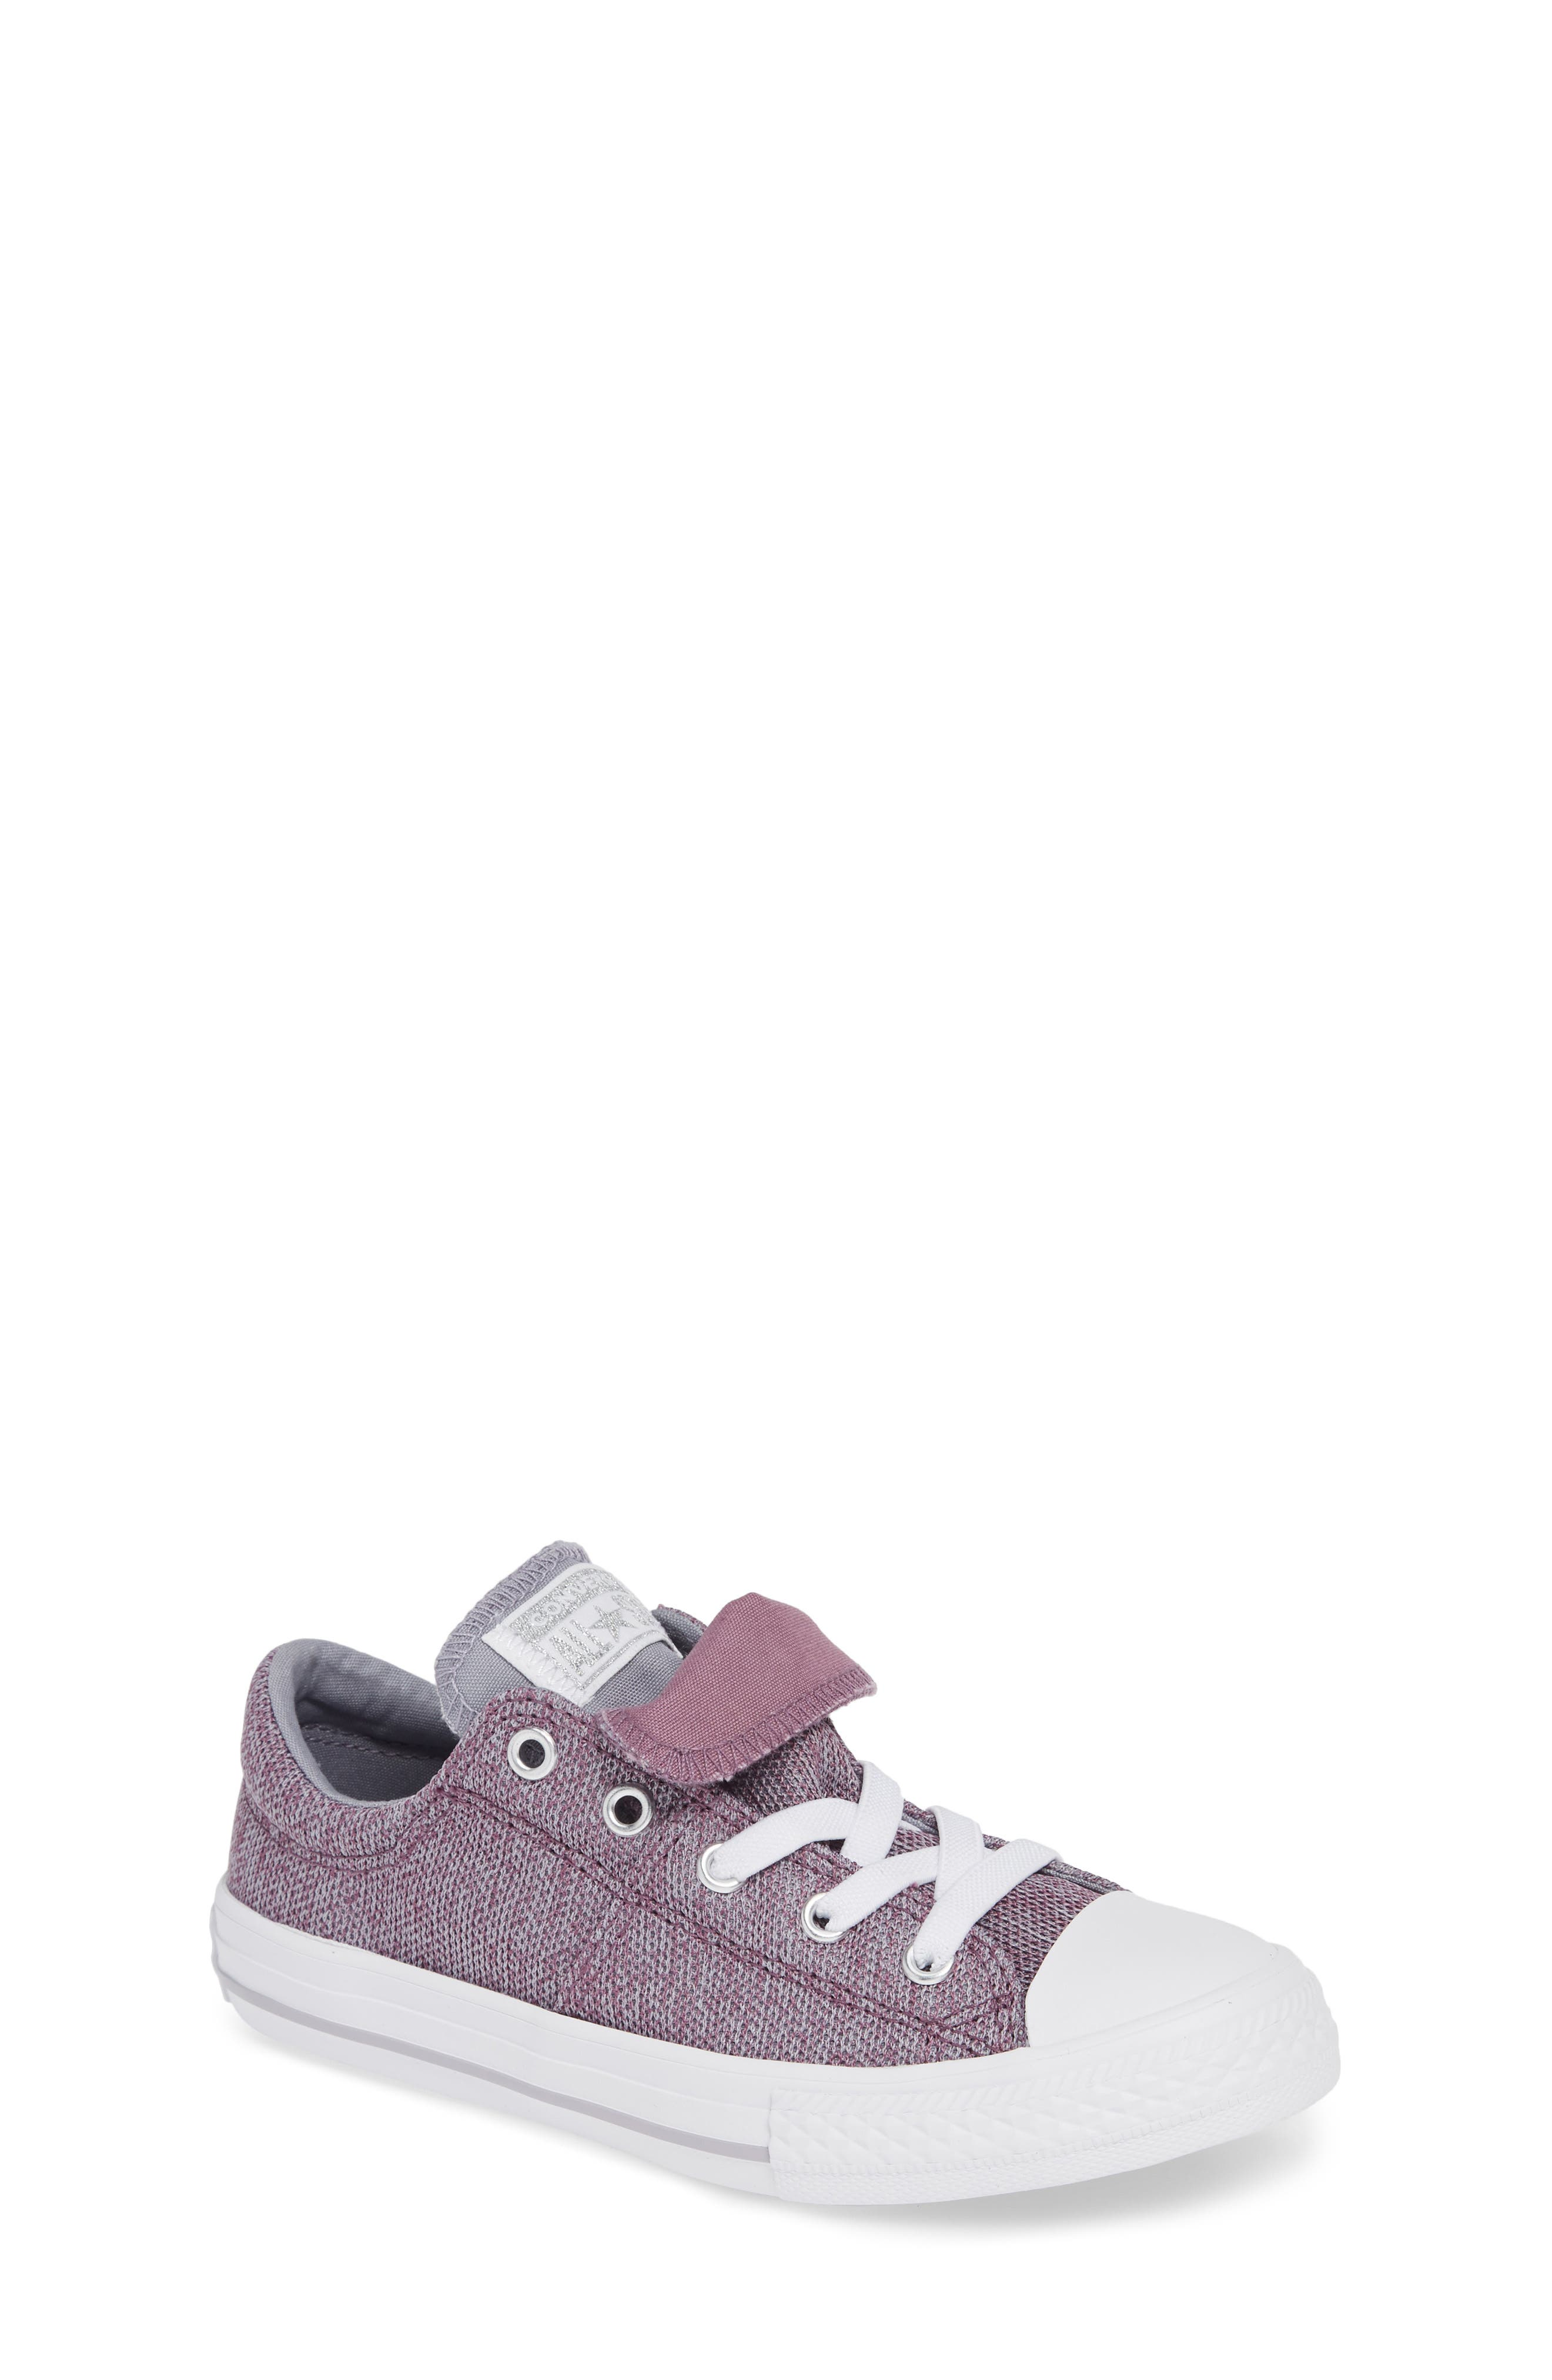 Chuck Taylor<sup>®</sup> All Star<sup>®</sup> Maddie Double Tongue Sneaker,                             Main thumbnail 1, color,                             VIOLET DUST